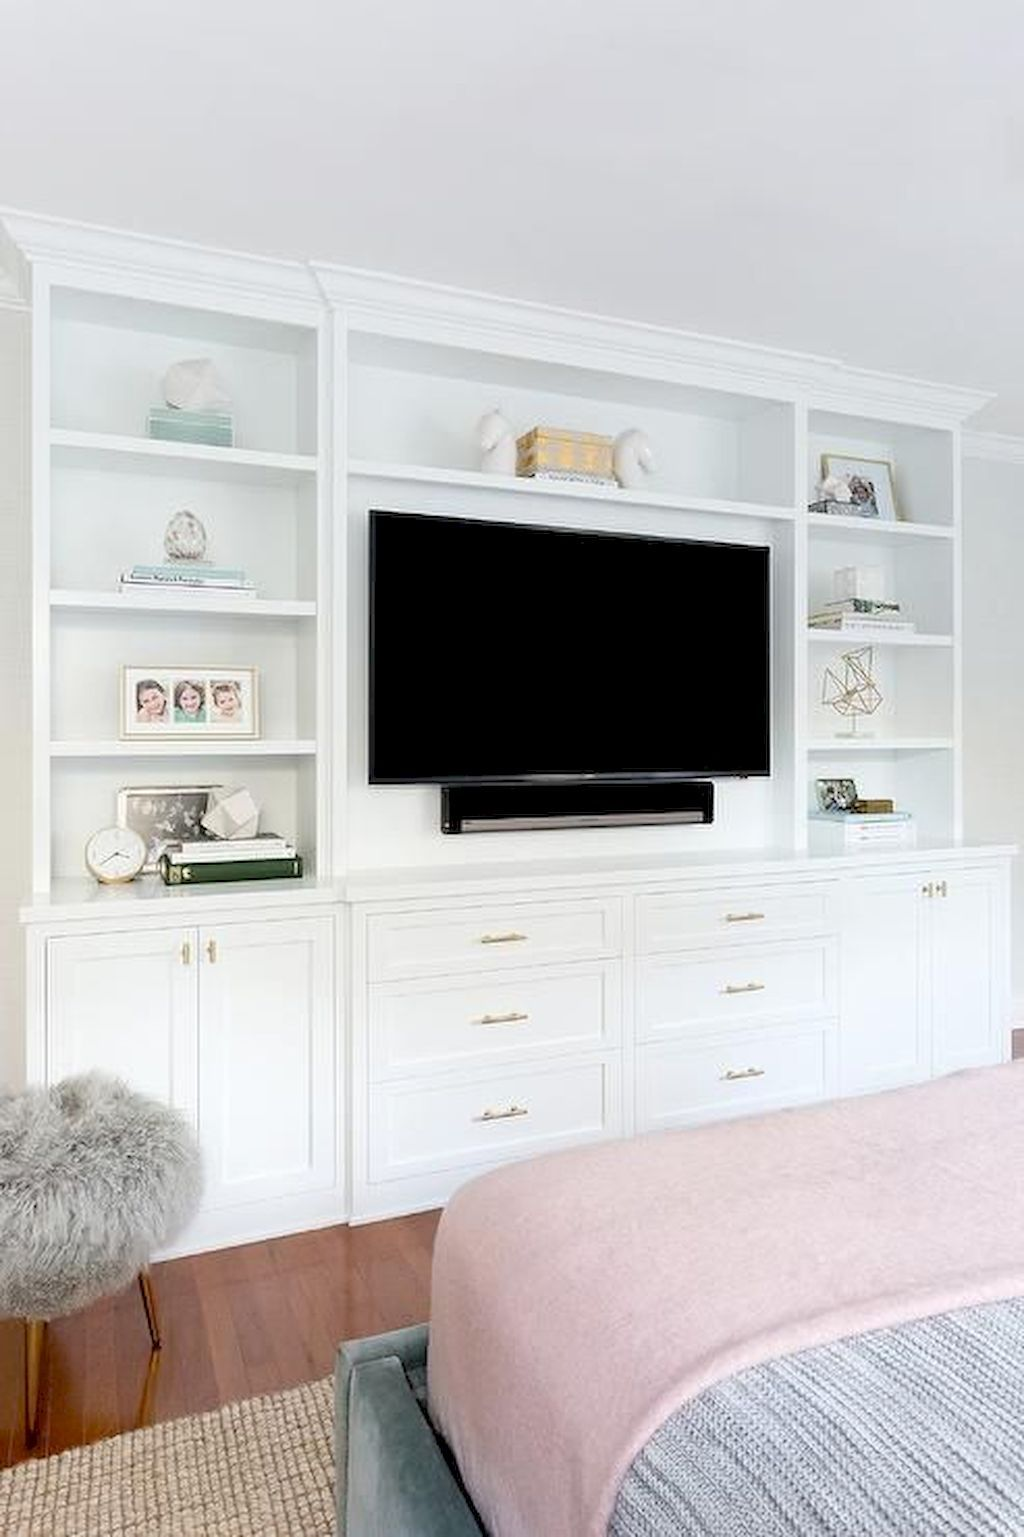 Smart Ideas For Amazing Bedroom Storage Home To Z Bedroom Built Ins Master Bedroom Storage Ideas Bedroom Wall Units